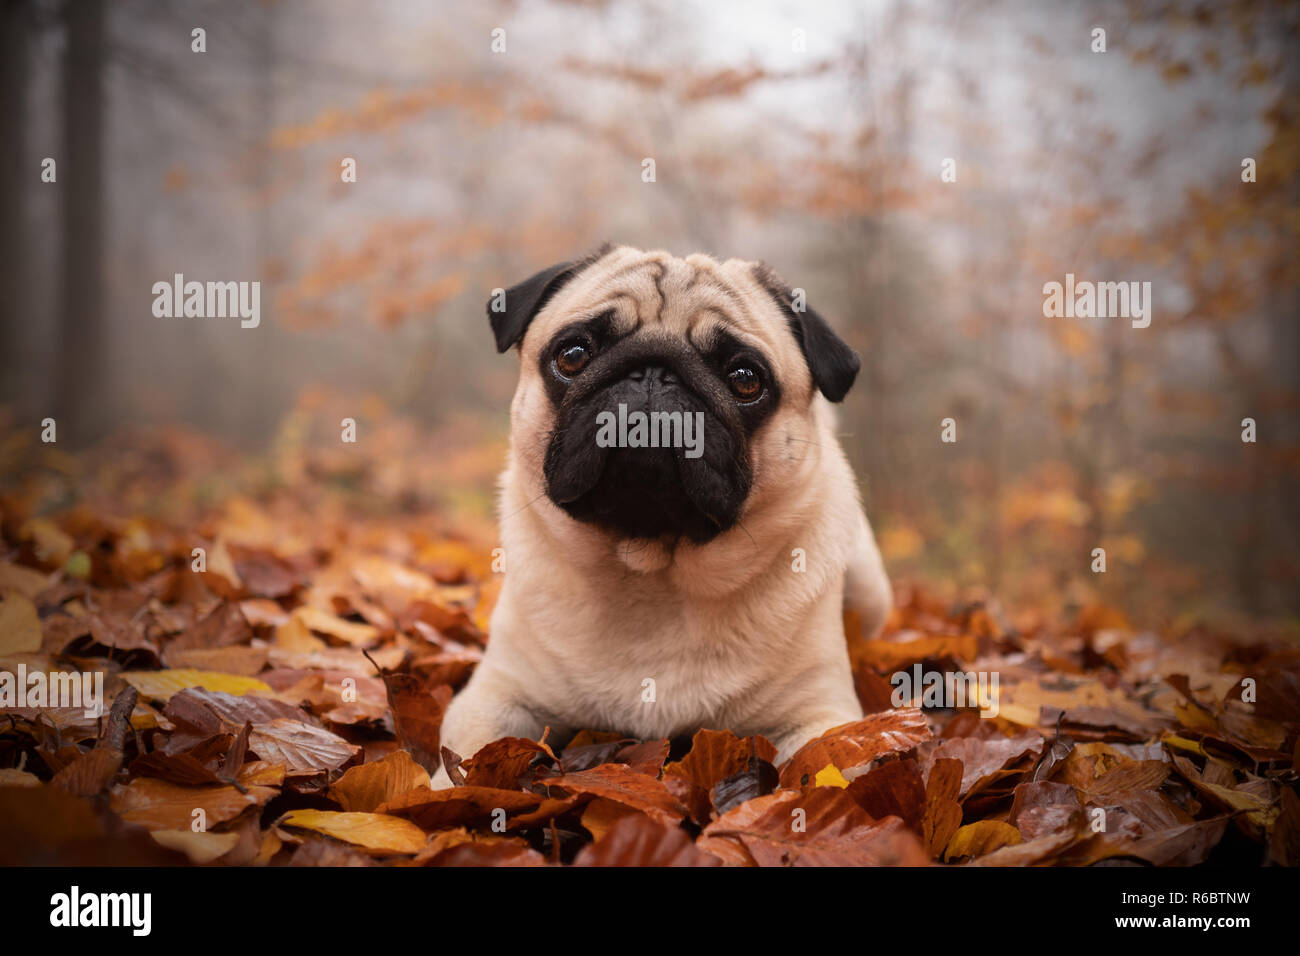 Pug in Forest - Stock Image